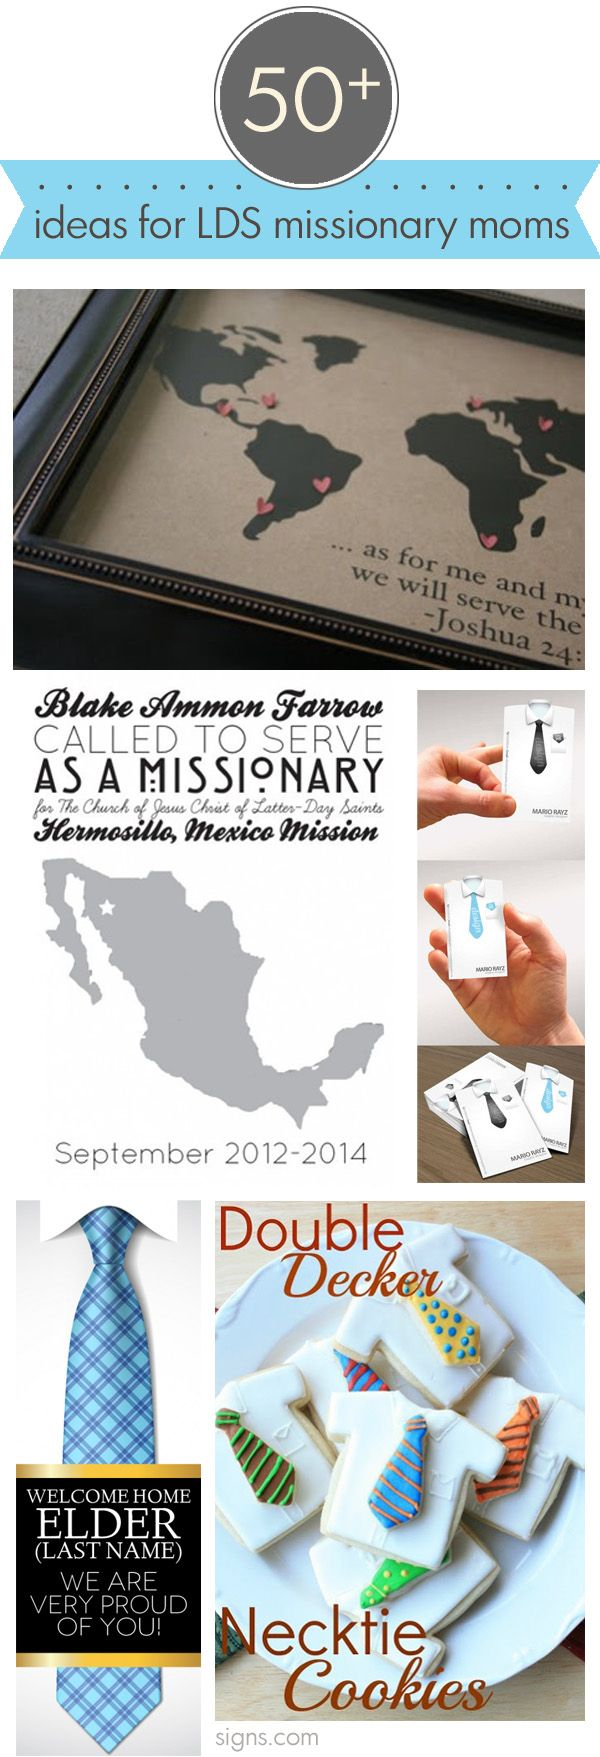 50+ ideas for farewell and welcome home parties for your missionary | www.signs.com #lds #missionary